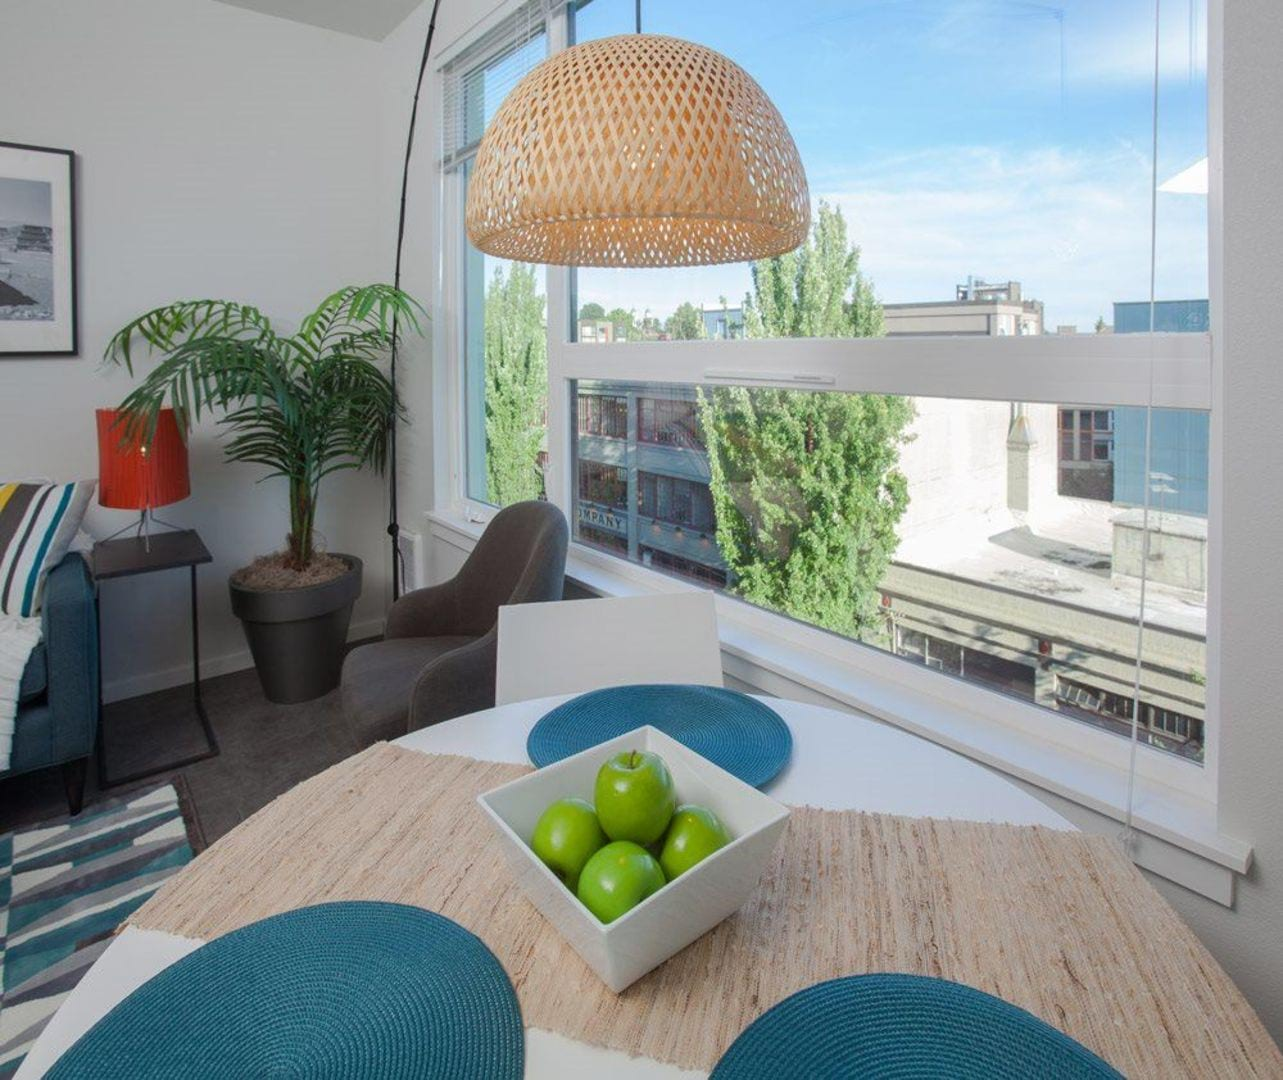 Apartments For Rent In Seattle Wa: Apartments For Rent In Seattle, WA